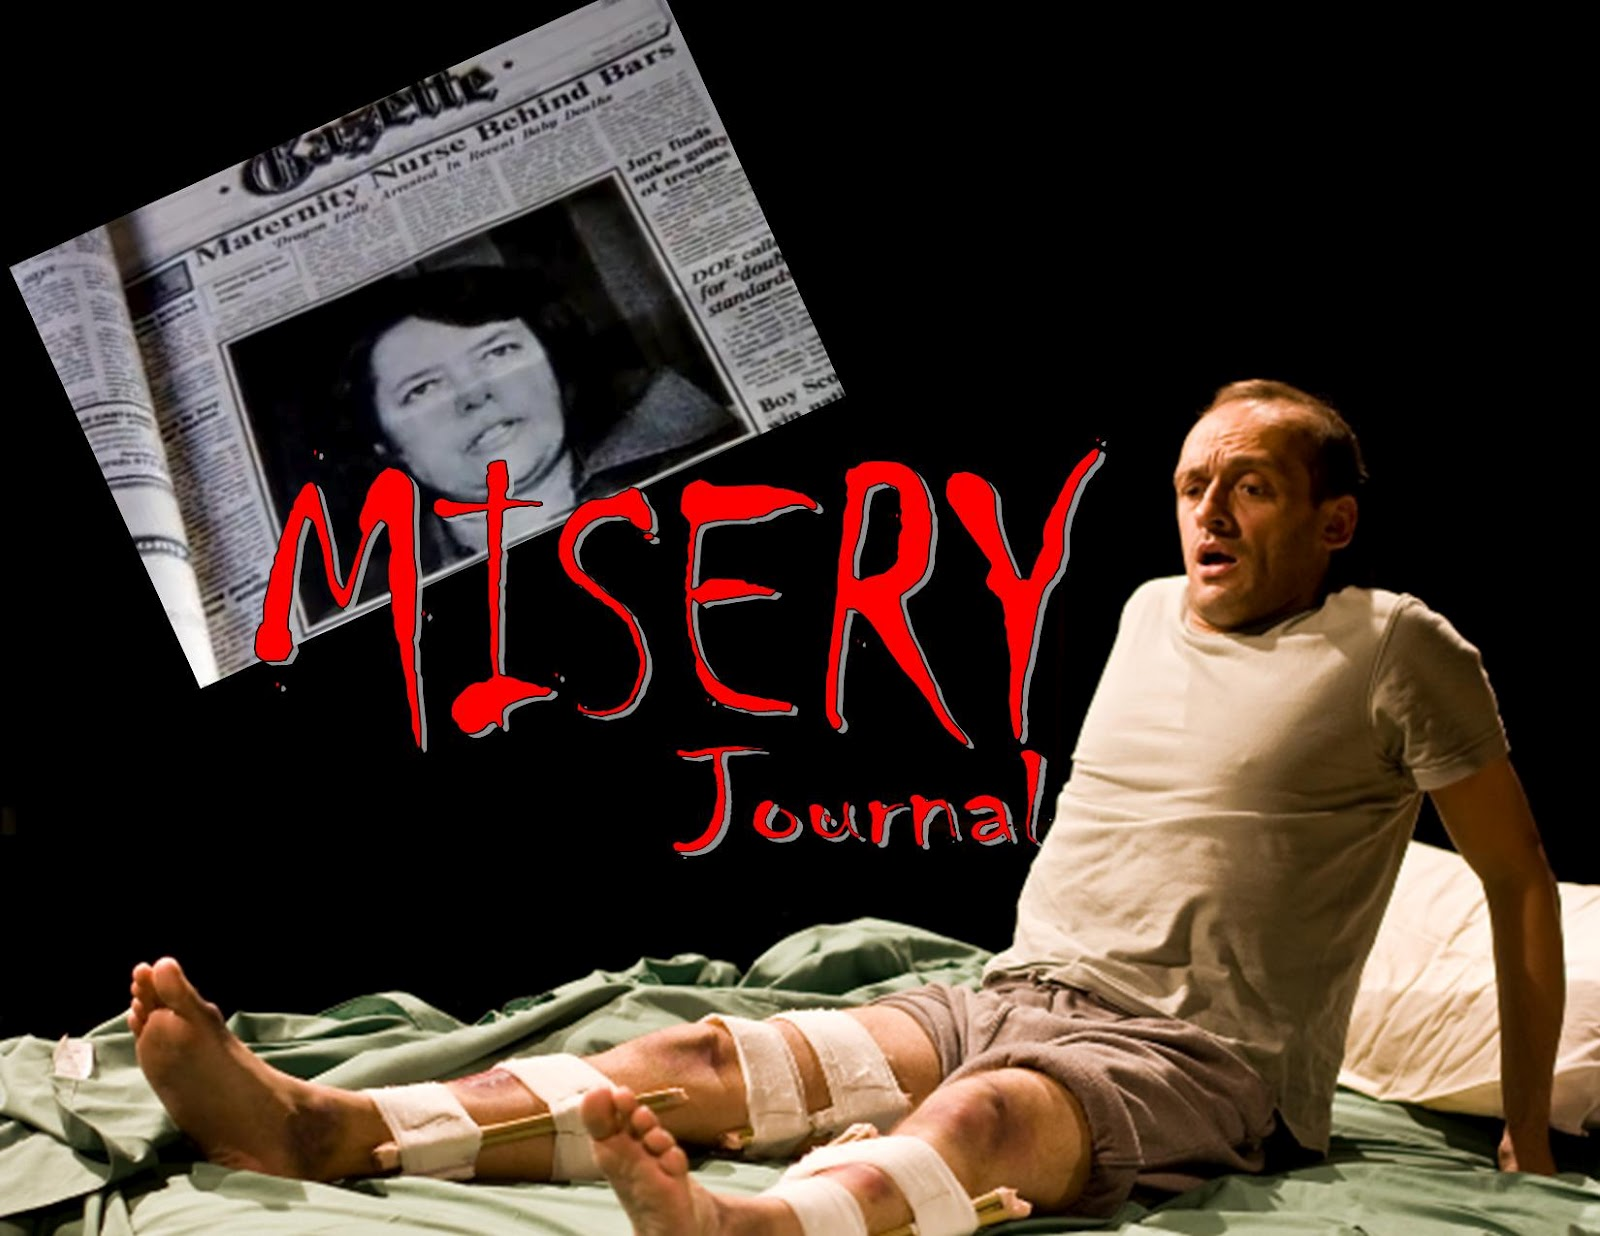 misery by stephen king Misery by king, stephen and a great selection of similar used, new and  collectible books available now at abebookscom.